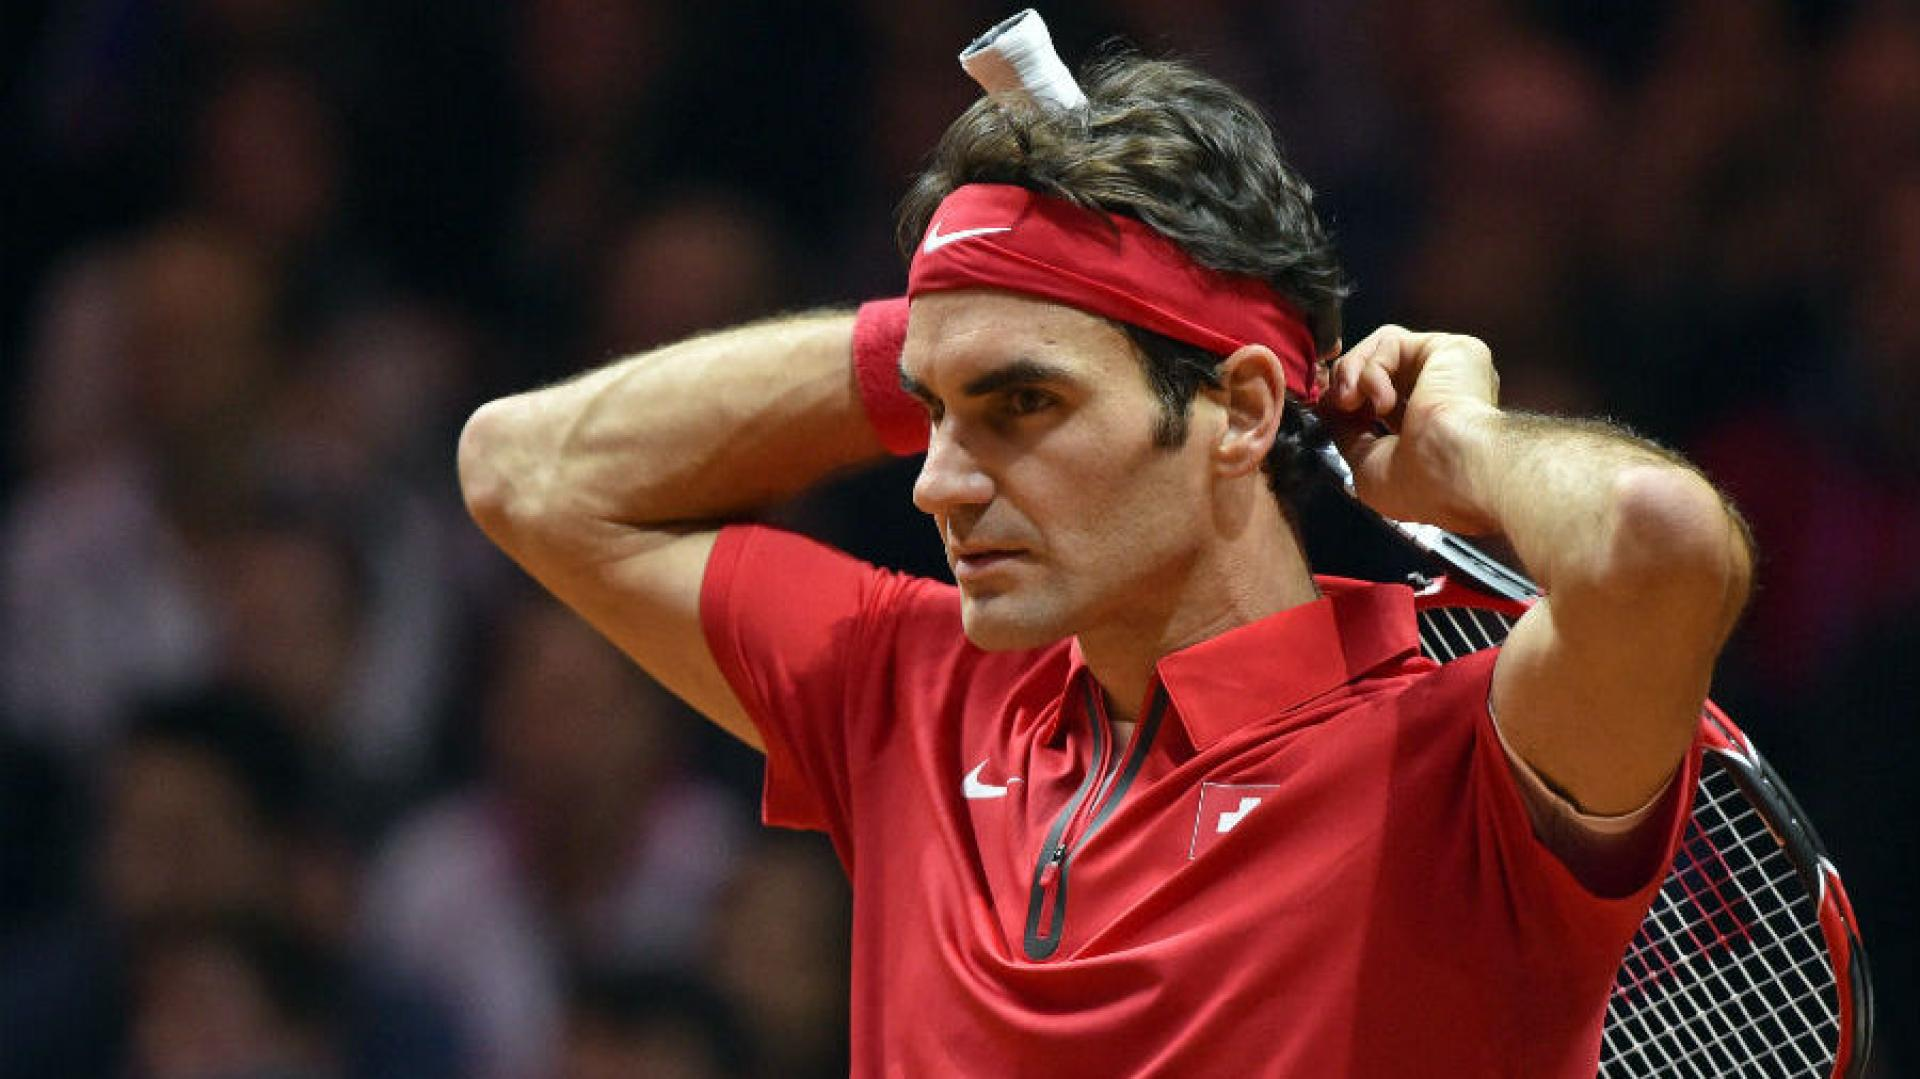 People want to see Federer, Djokovic, Nadal playing Davis Cup - Gonzalez